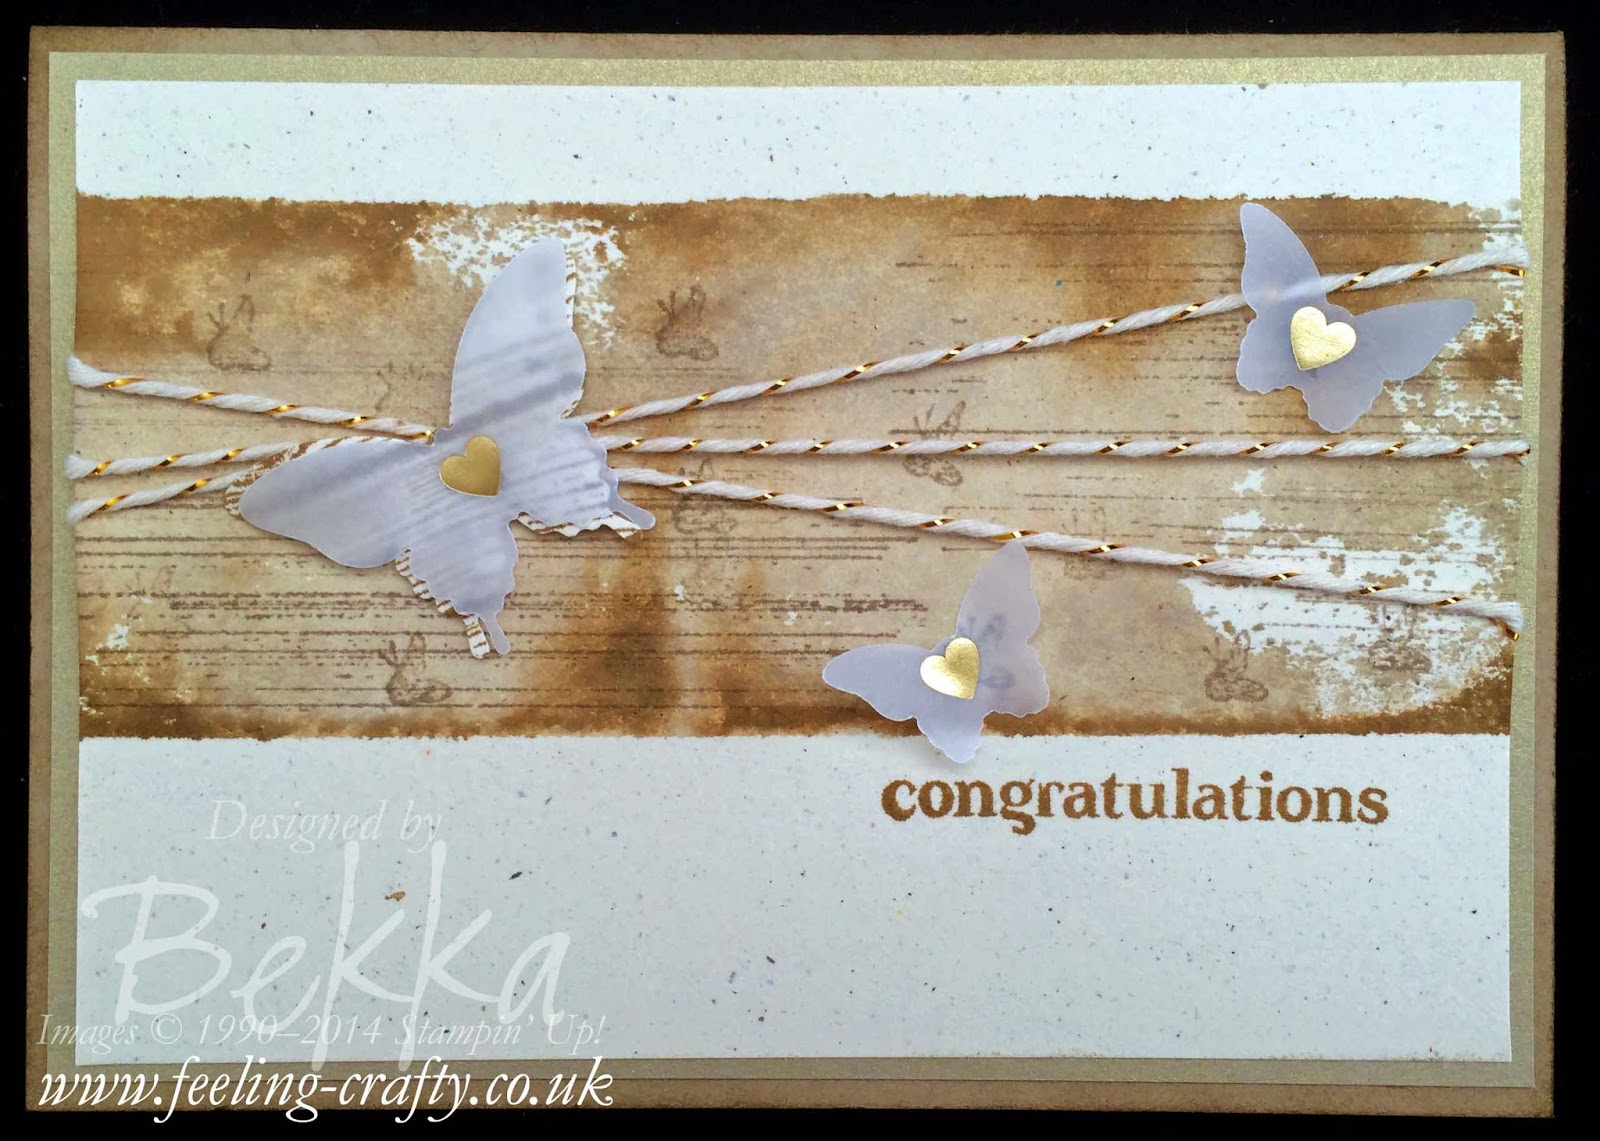 Vellum Butterfly Congratulations Card by UK Stampin' Up! Demonstrator Bekka Prideaux - find out about joining her team here